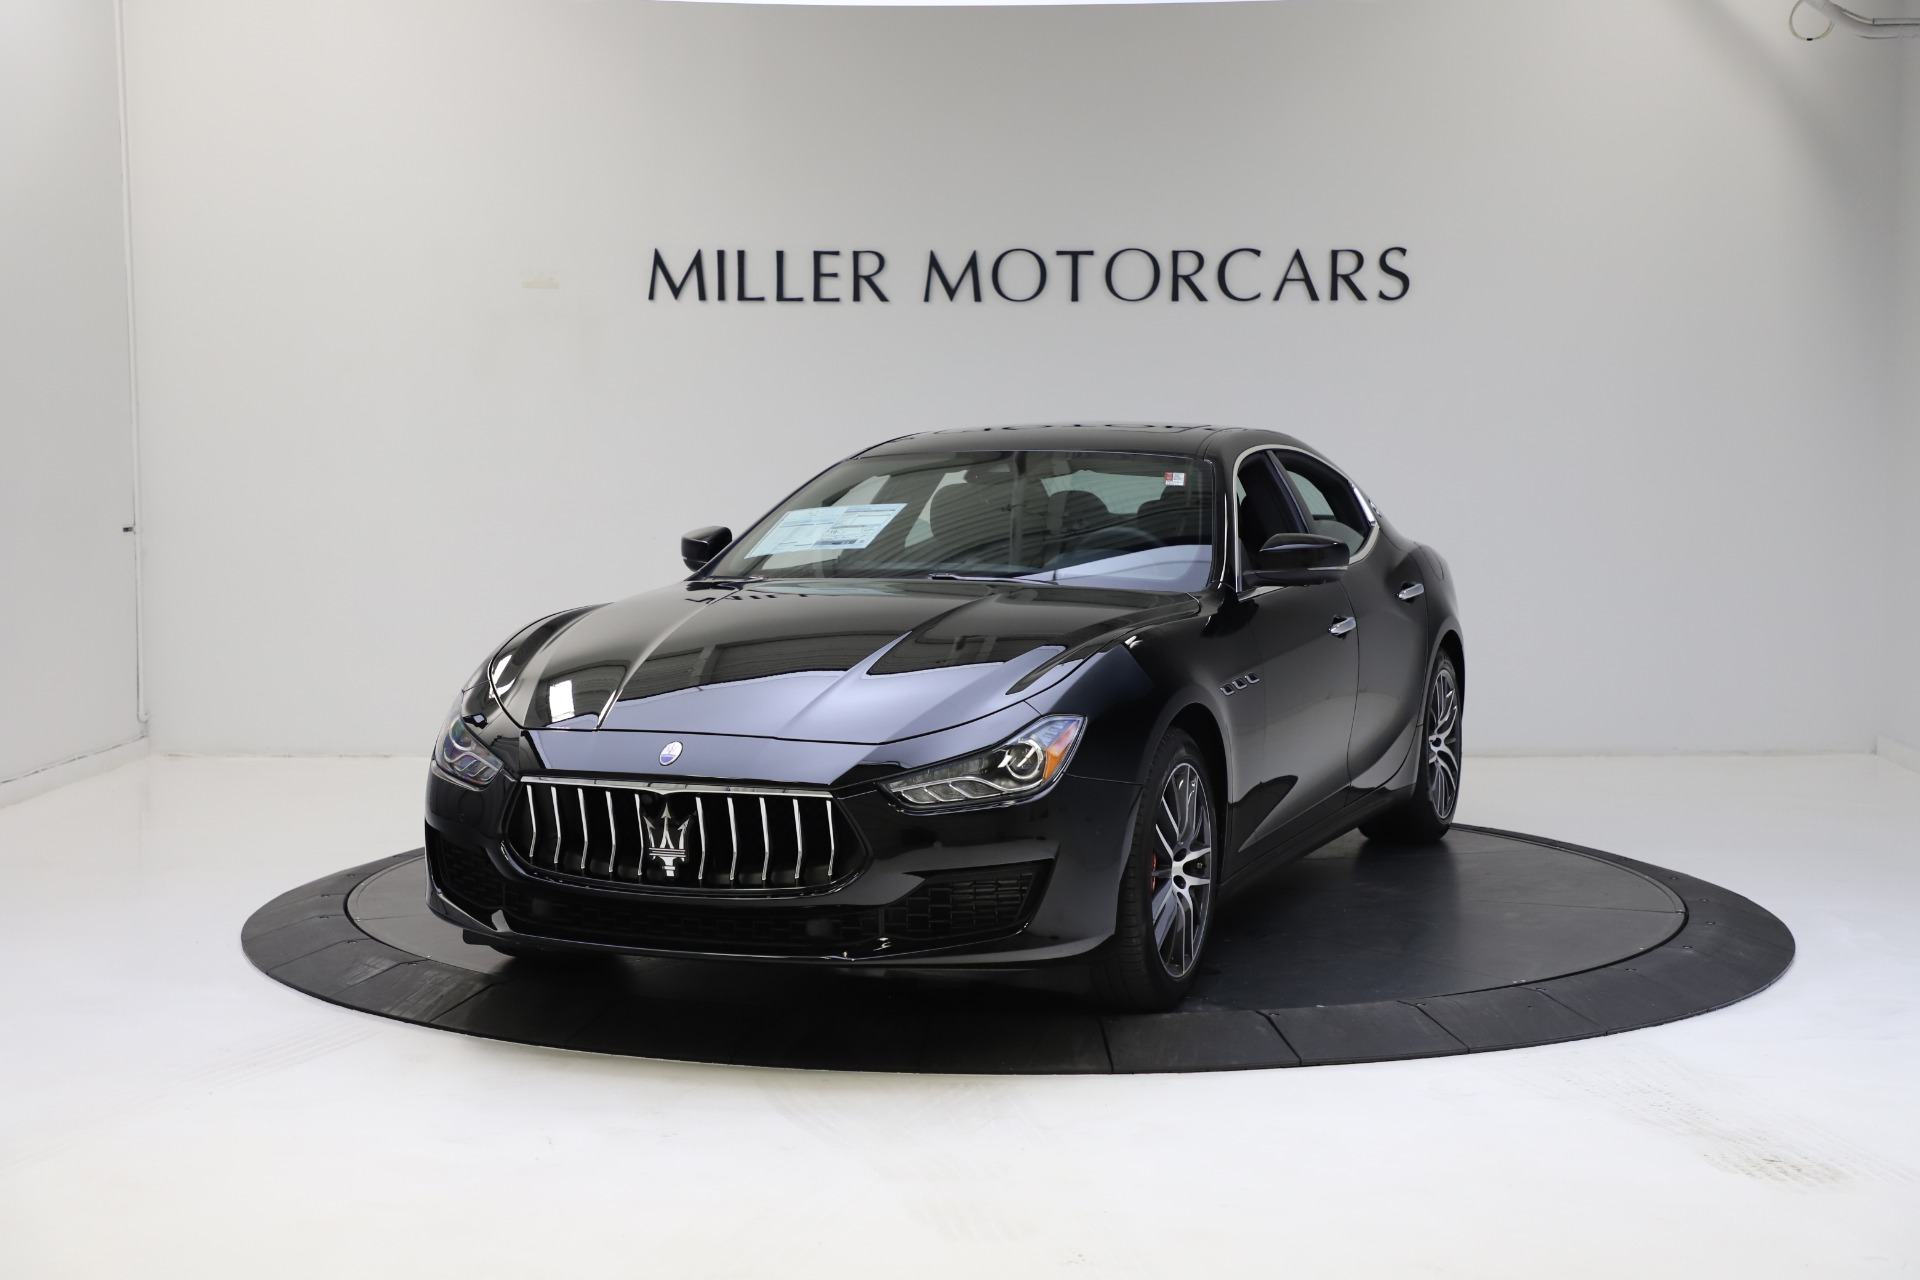 New 2021 Maserati Ghibli S Q4 for sale $86,654 at Pagani of Greenwich in Greenwich CT 06830 1